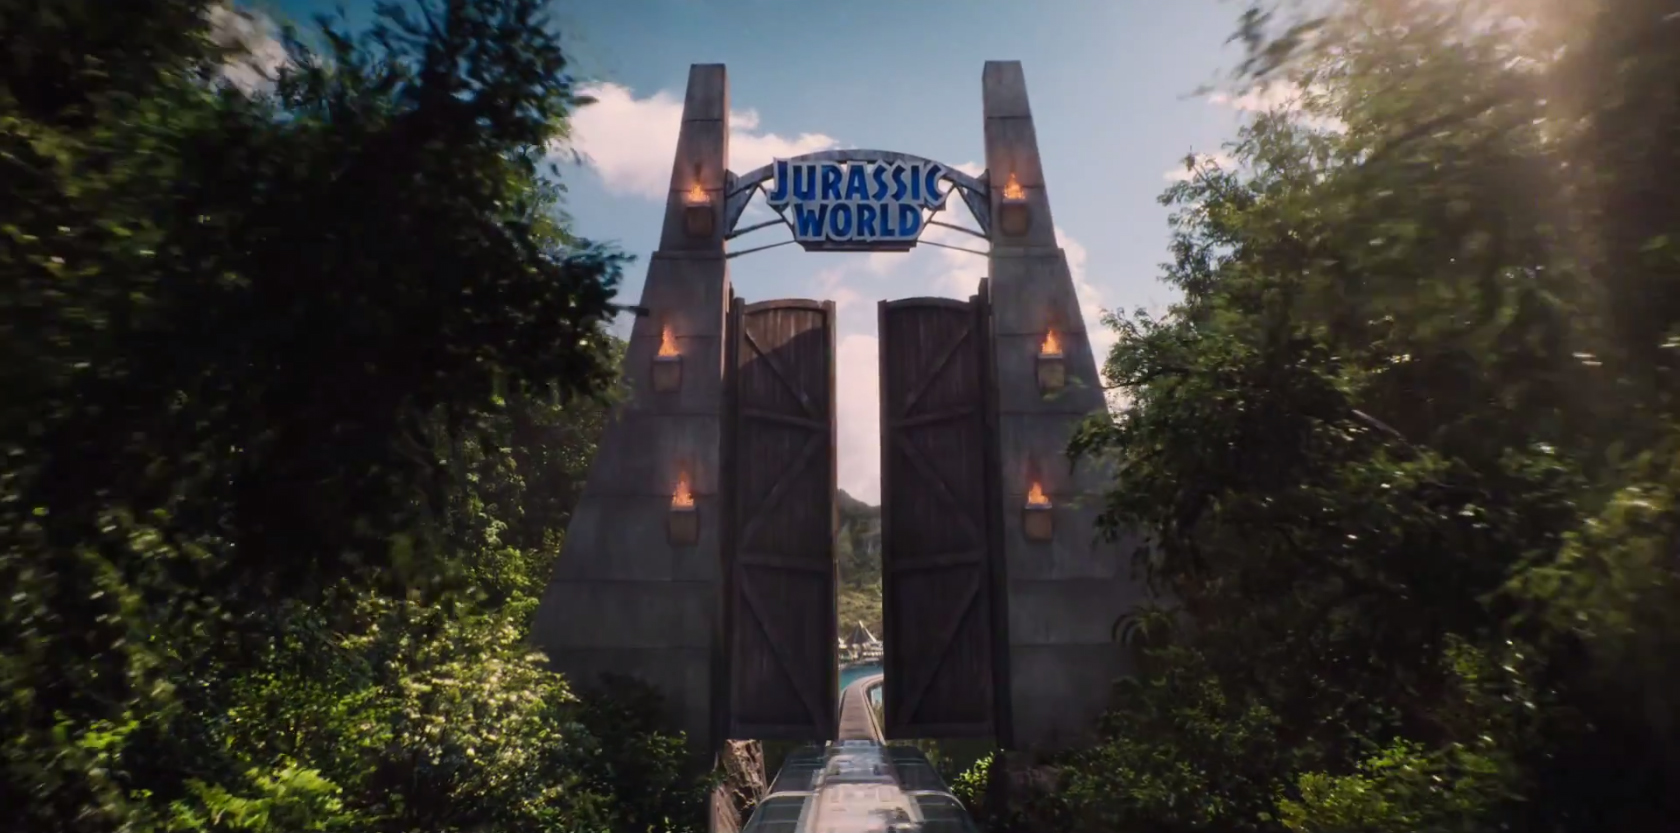 The Price of Admission: The Socioeconomic & Racial Implications of Jurassic World